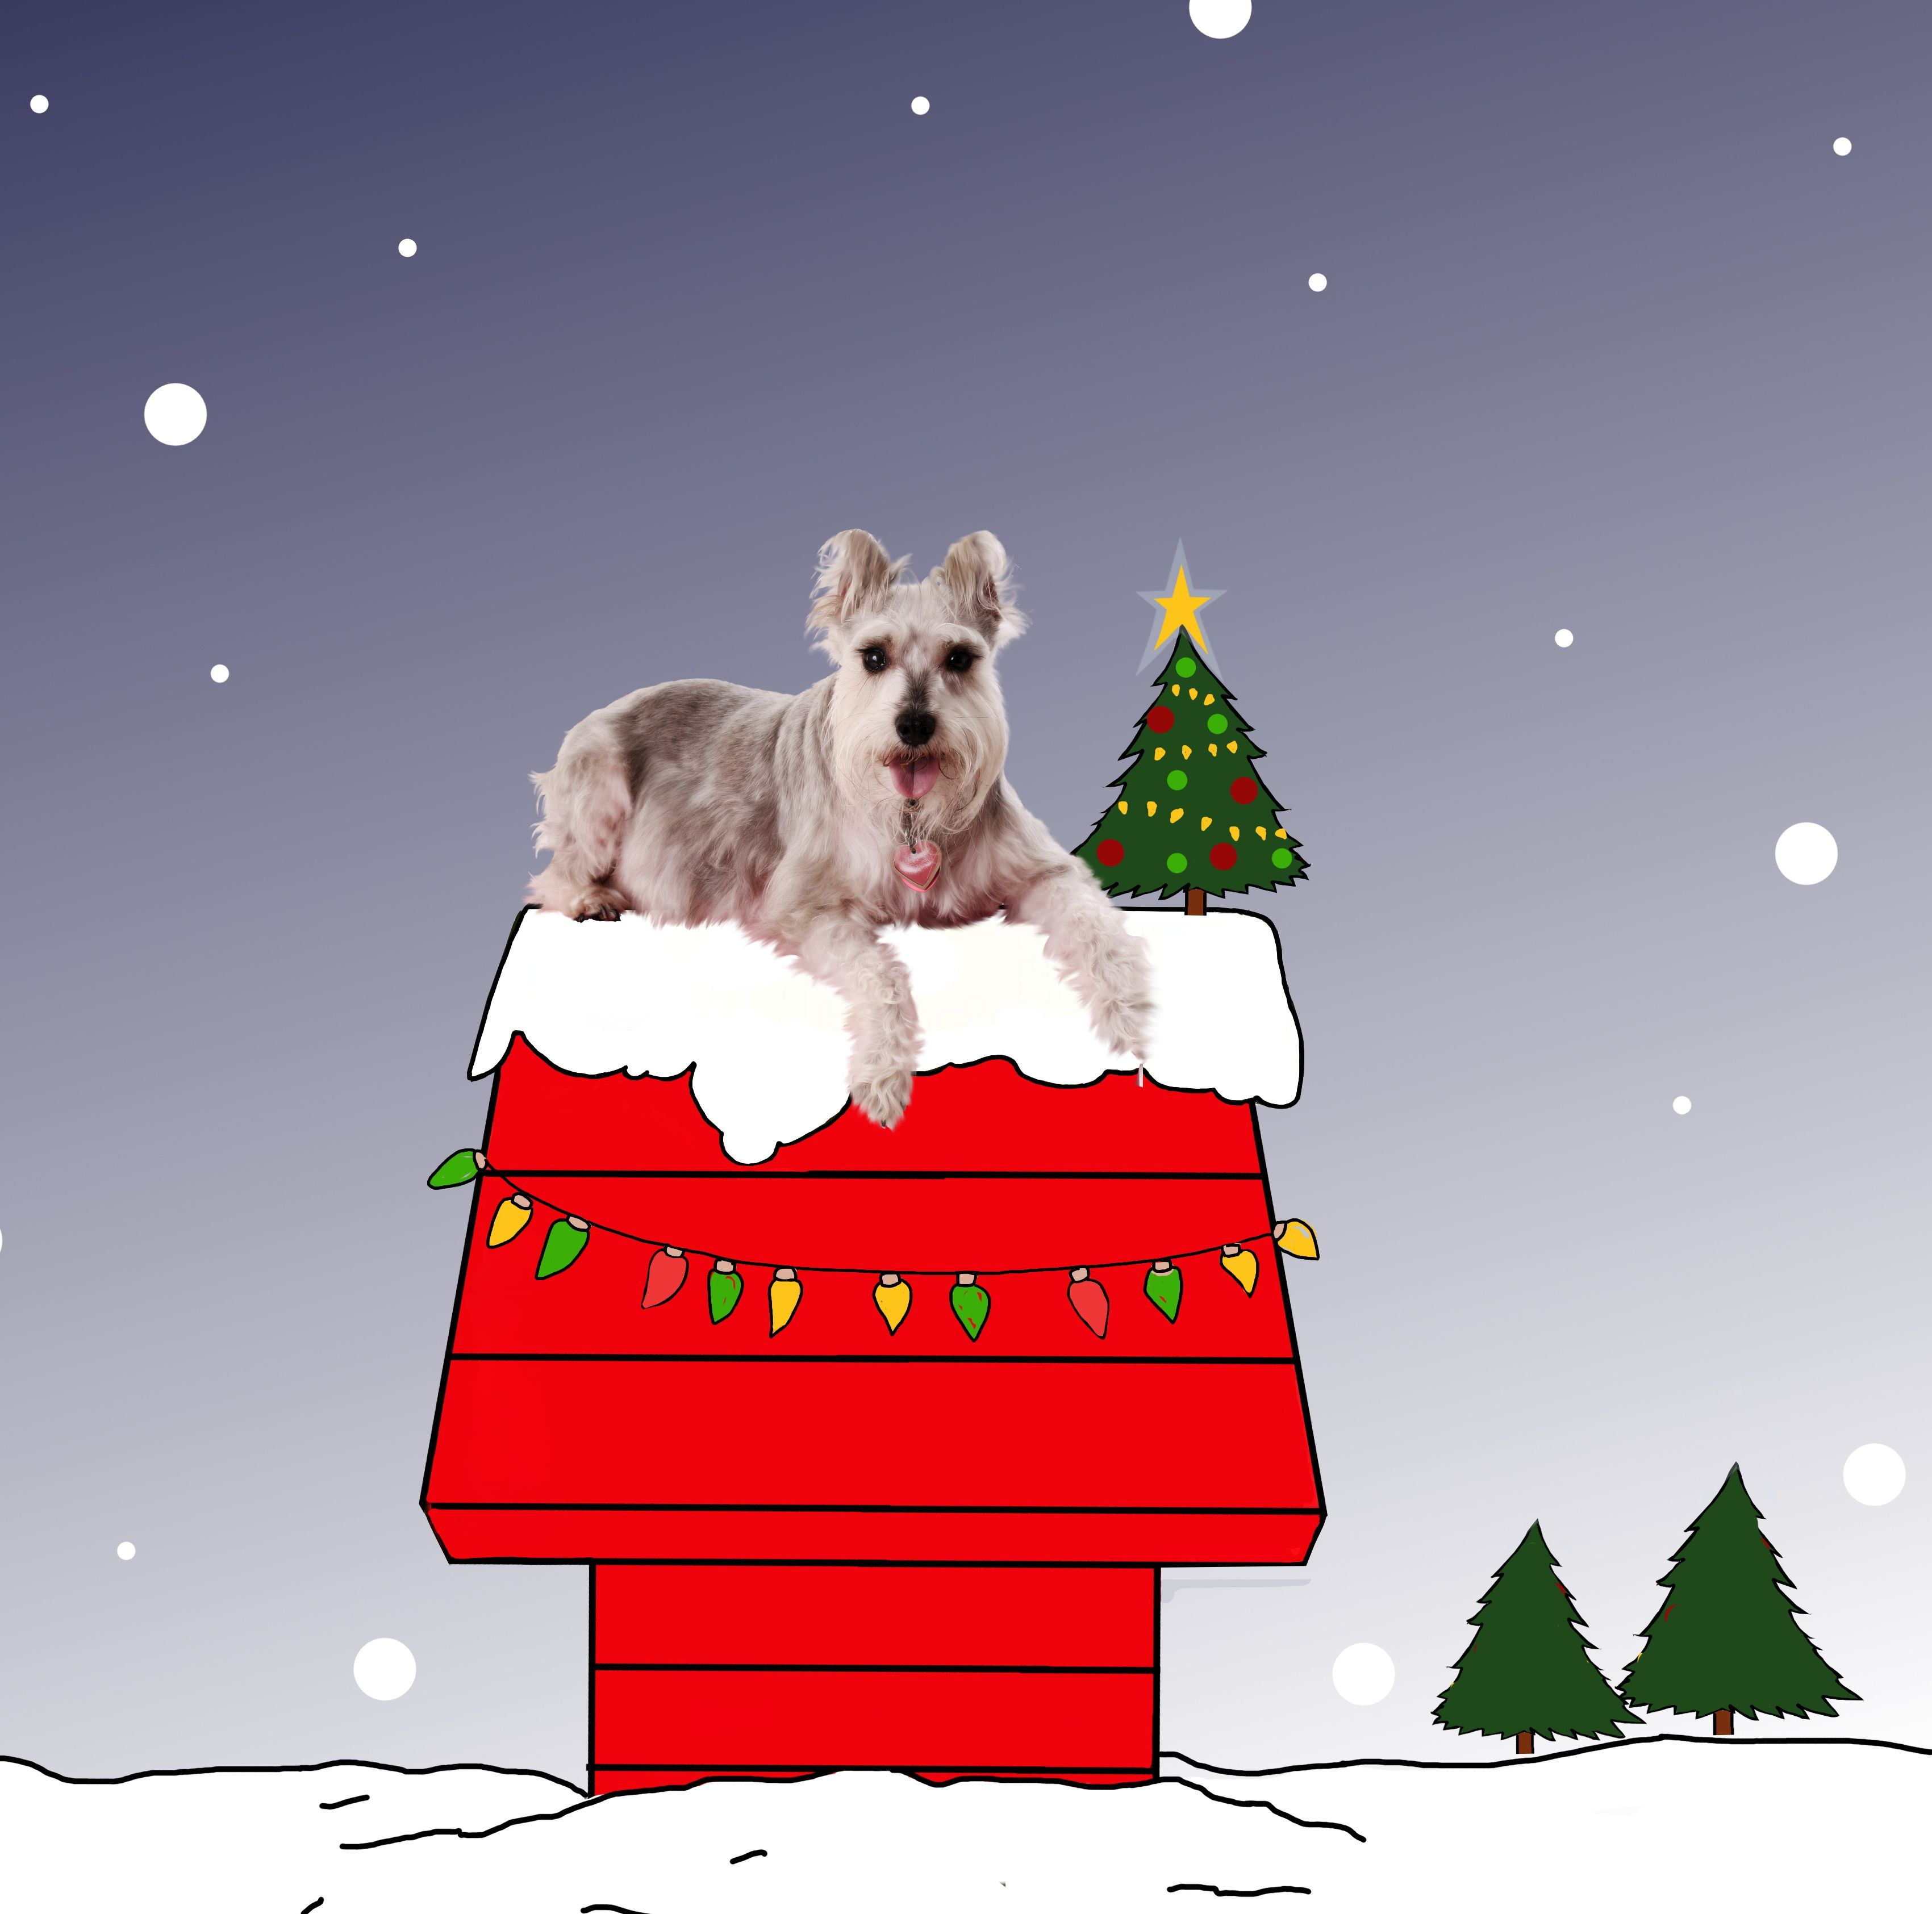 Snoopy peanuts christmas with Gracie (drawn by moi!)